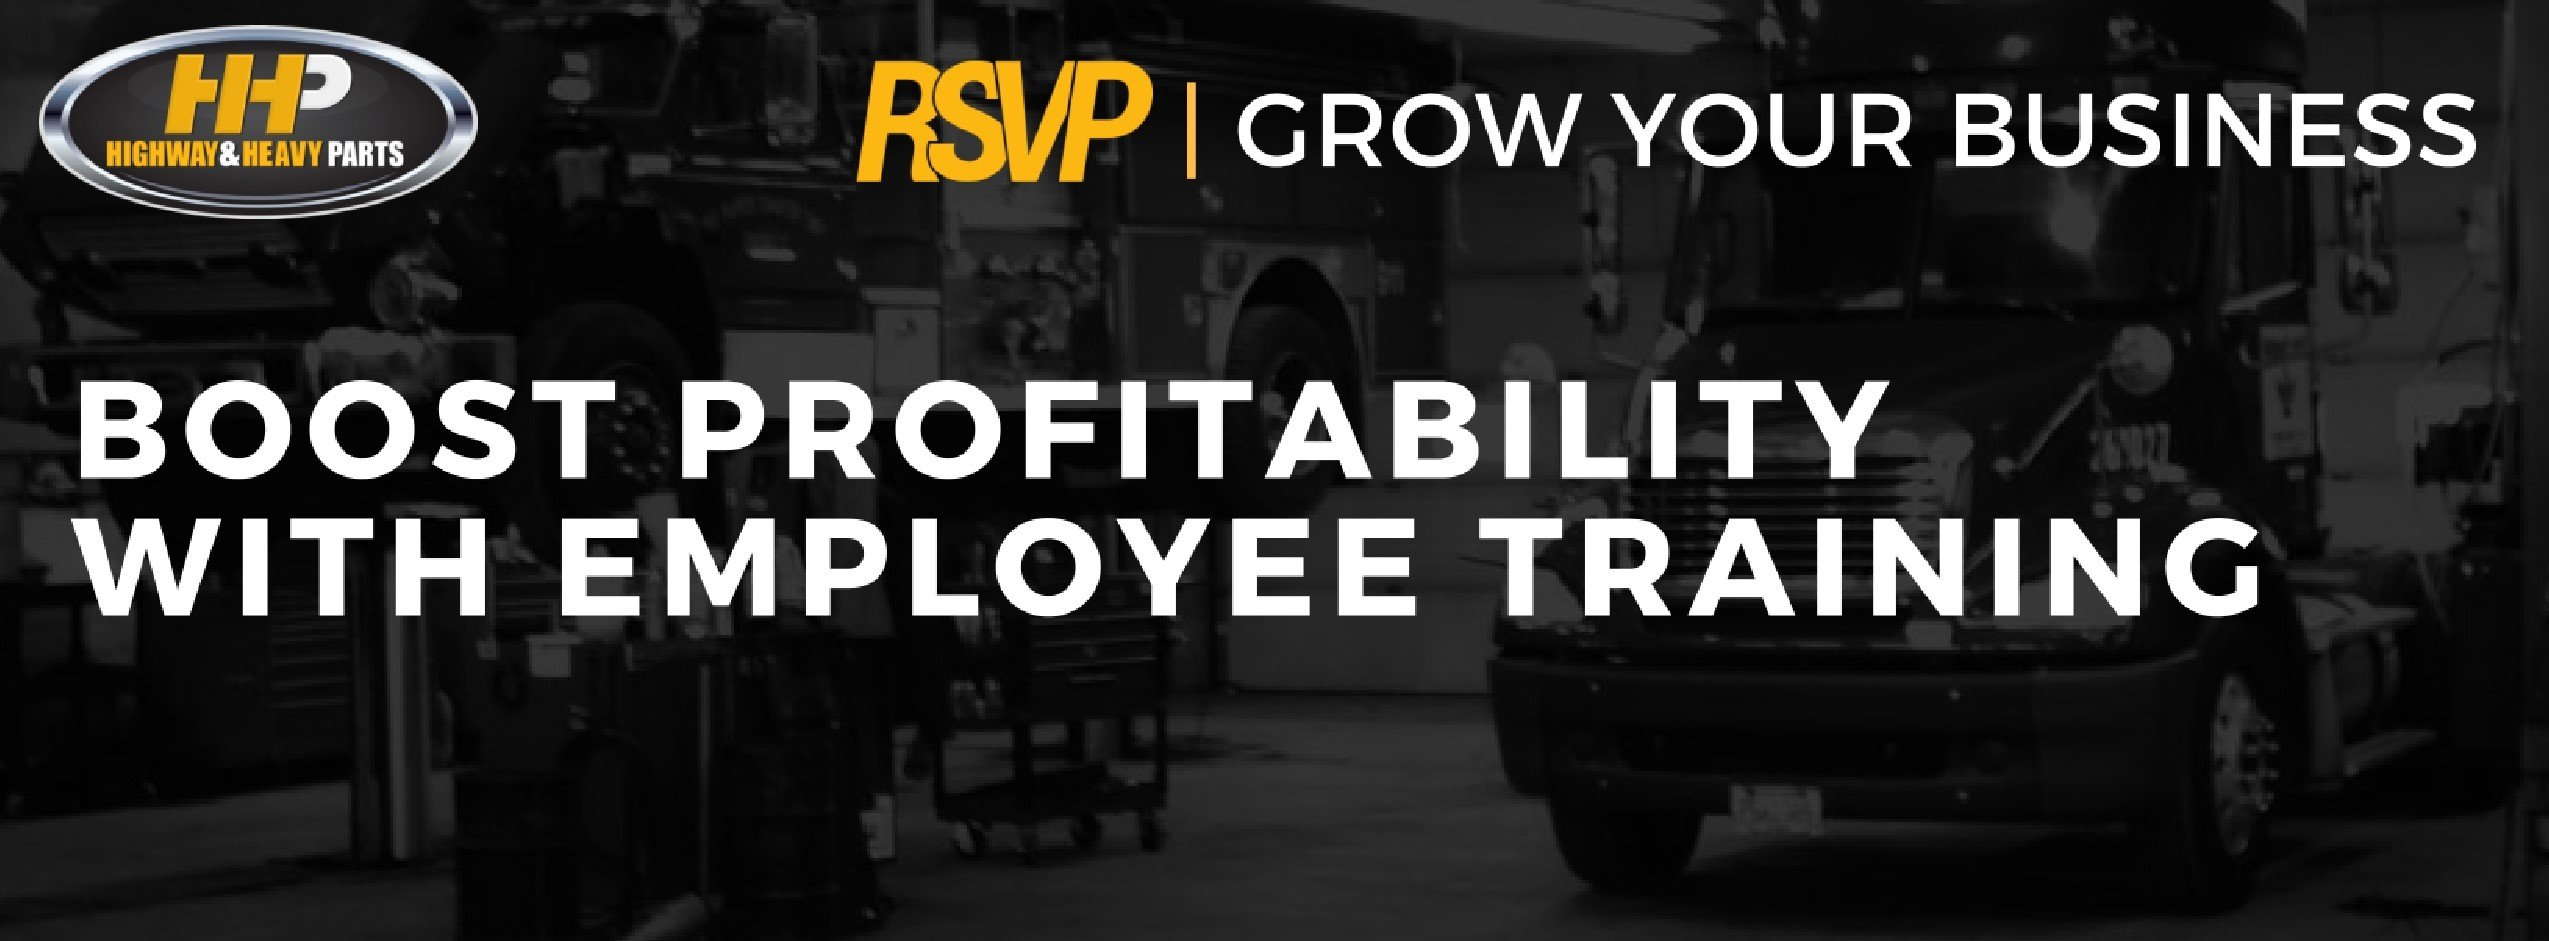 Boost Profitability with Employee Training